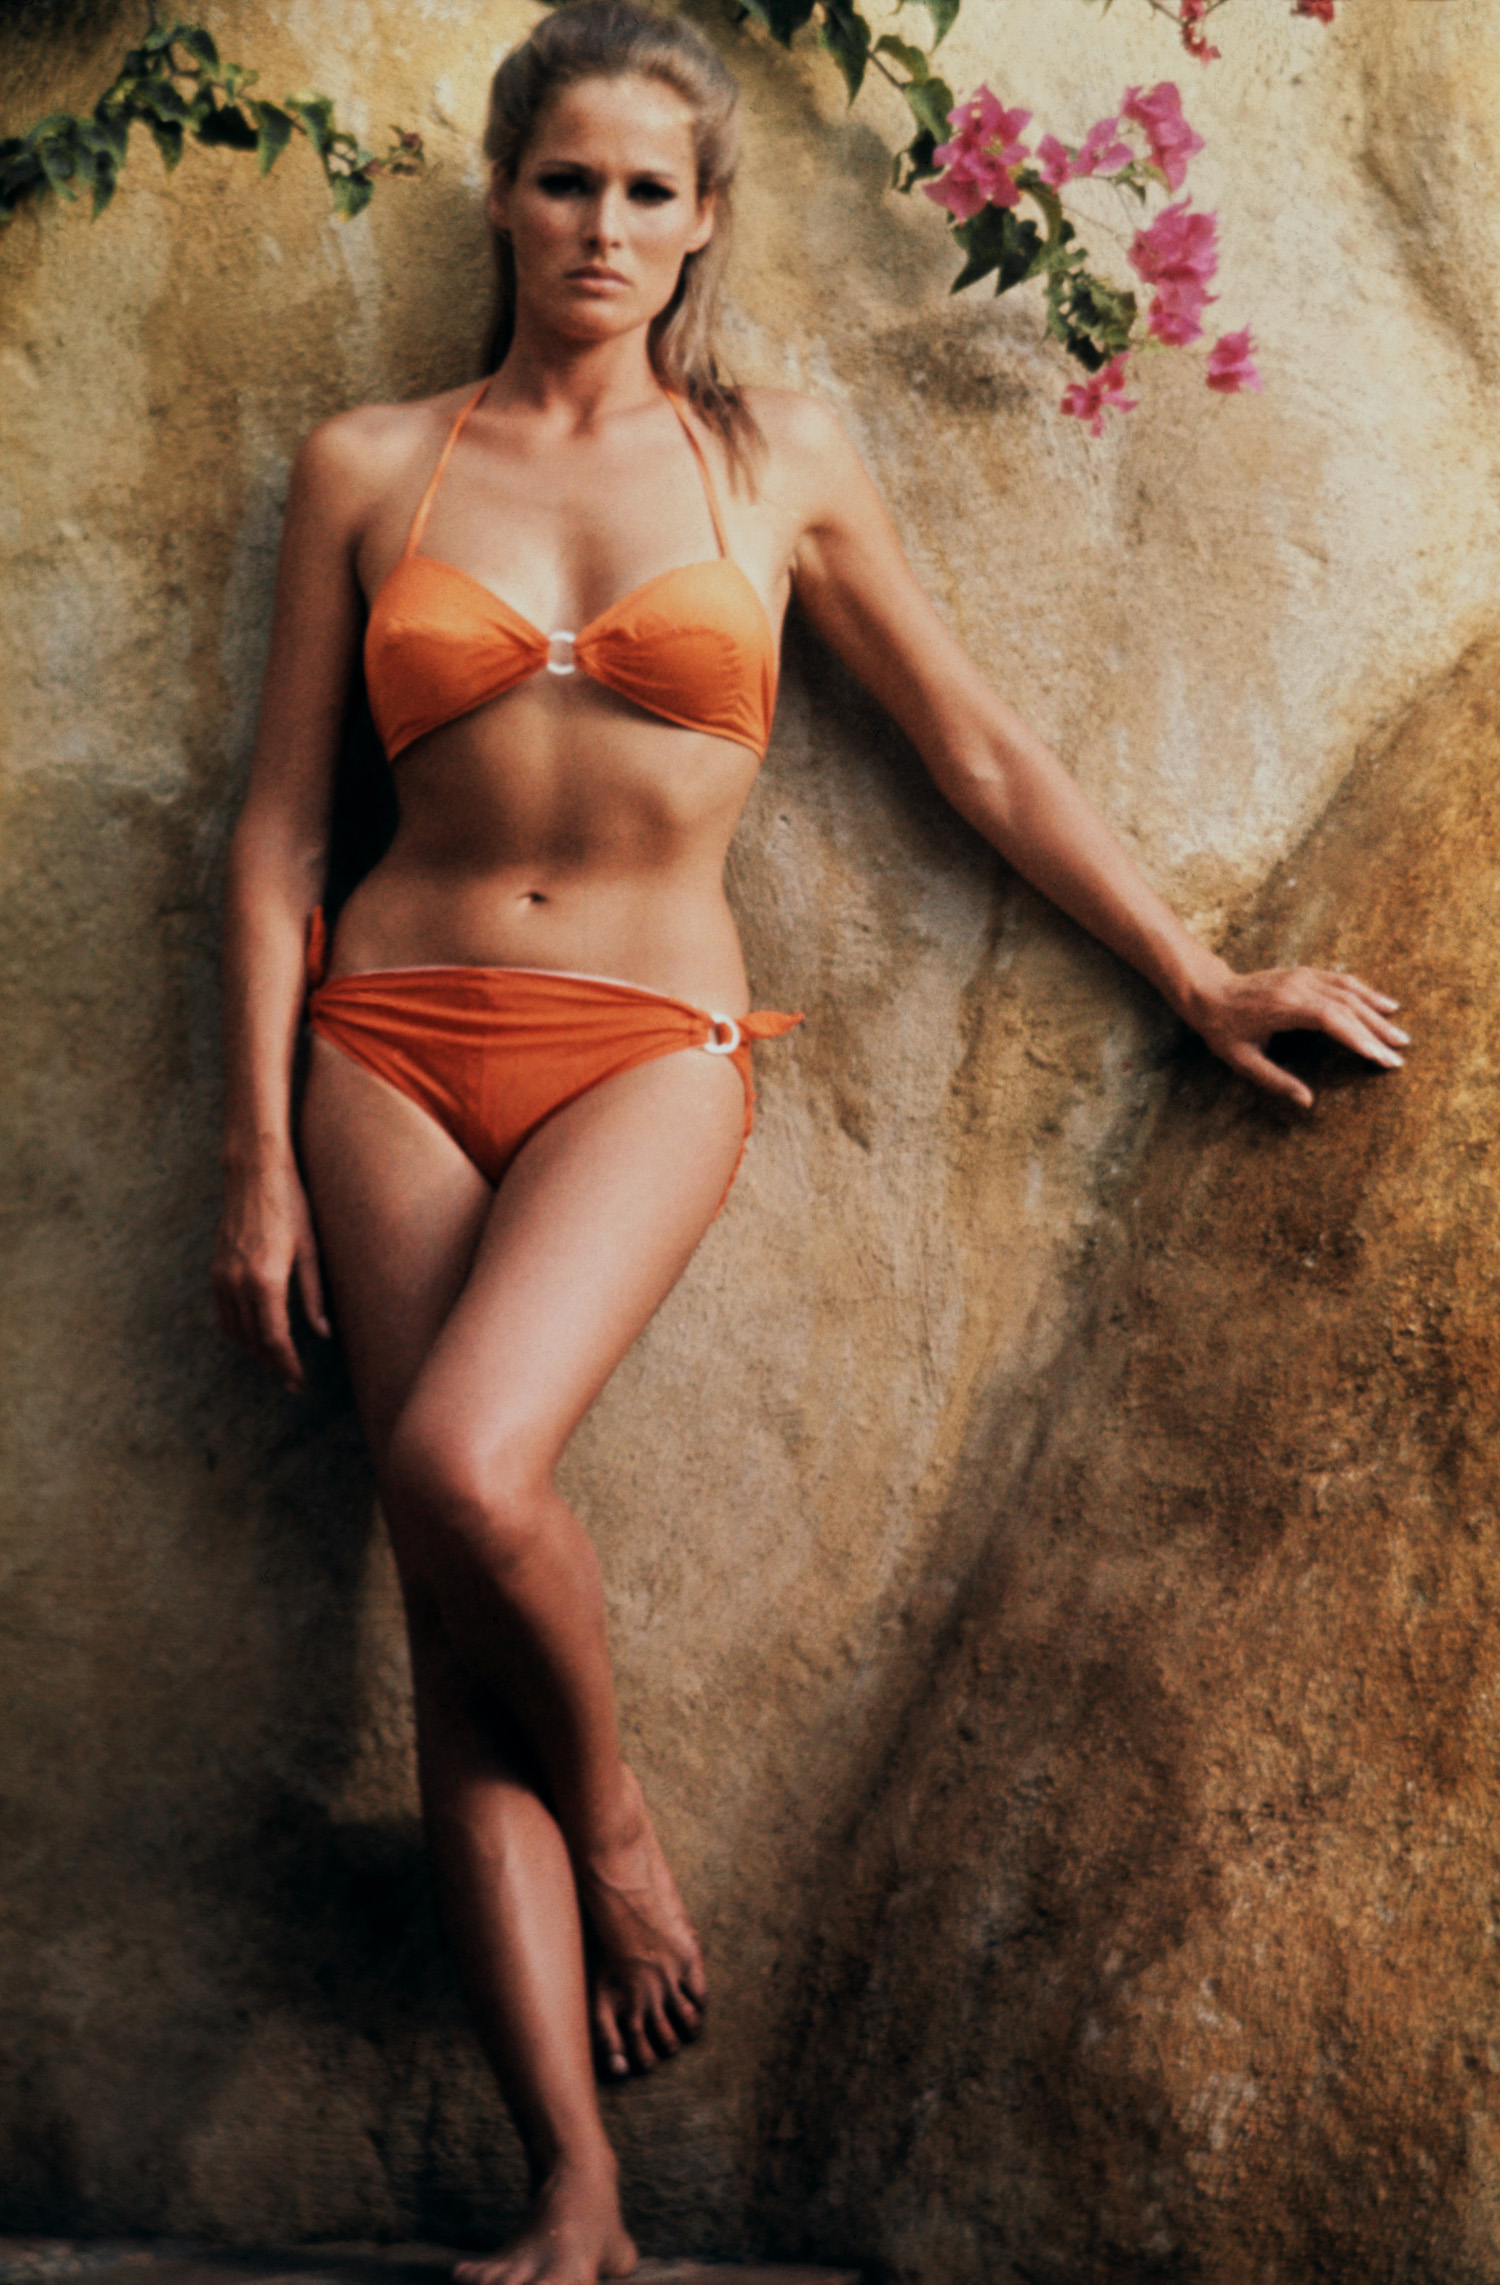 Ursula andress bikini photo Ursula Andress turns 80: Then and now - m